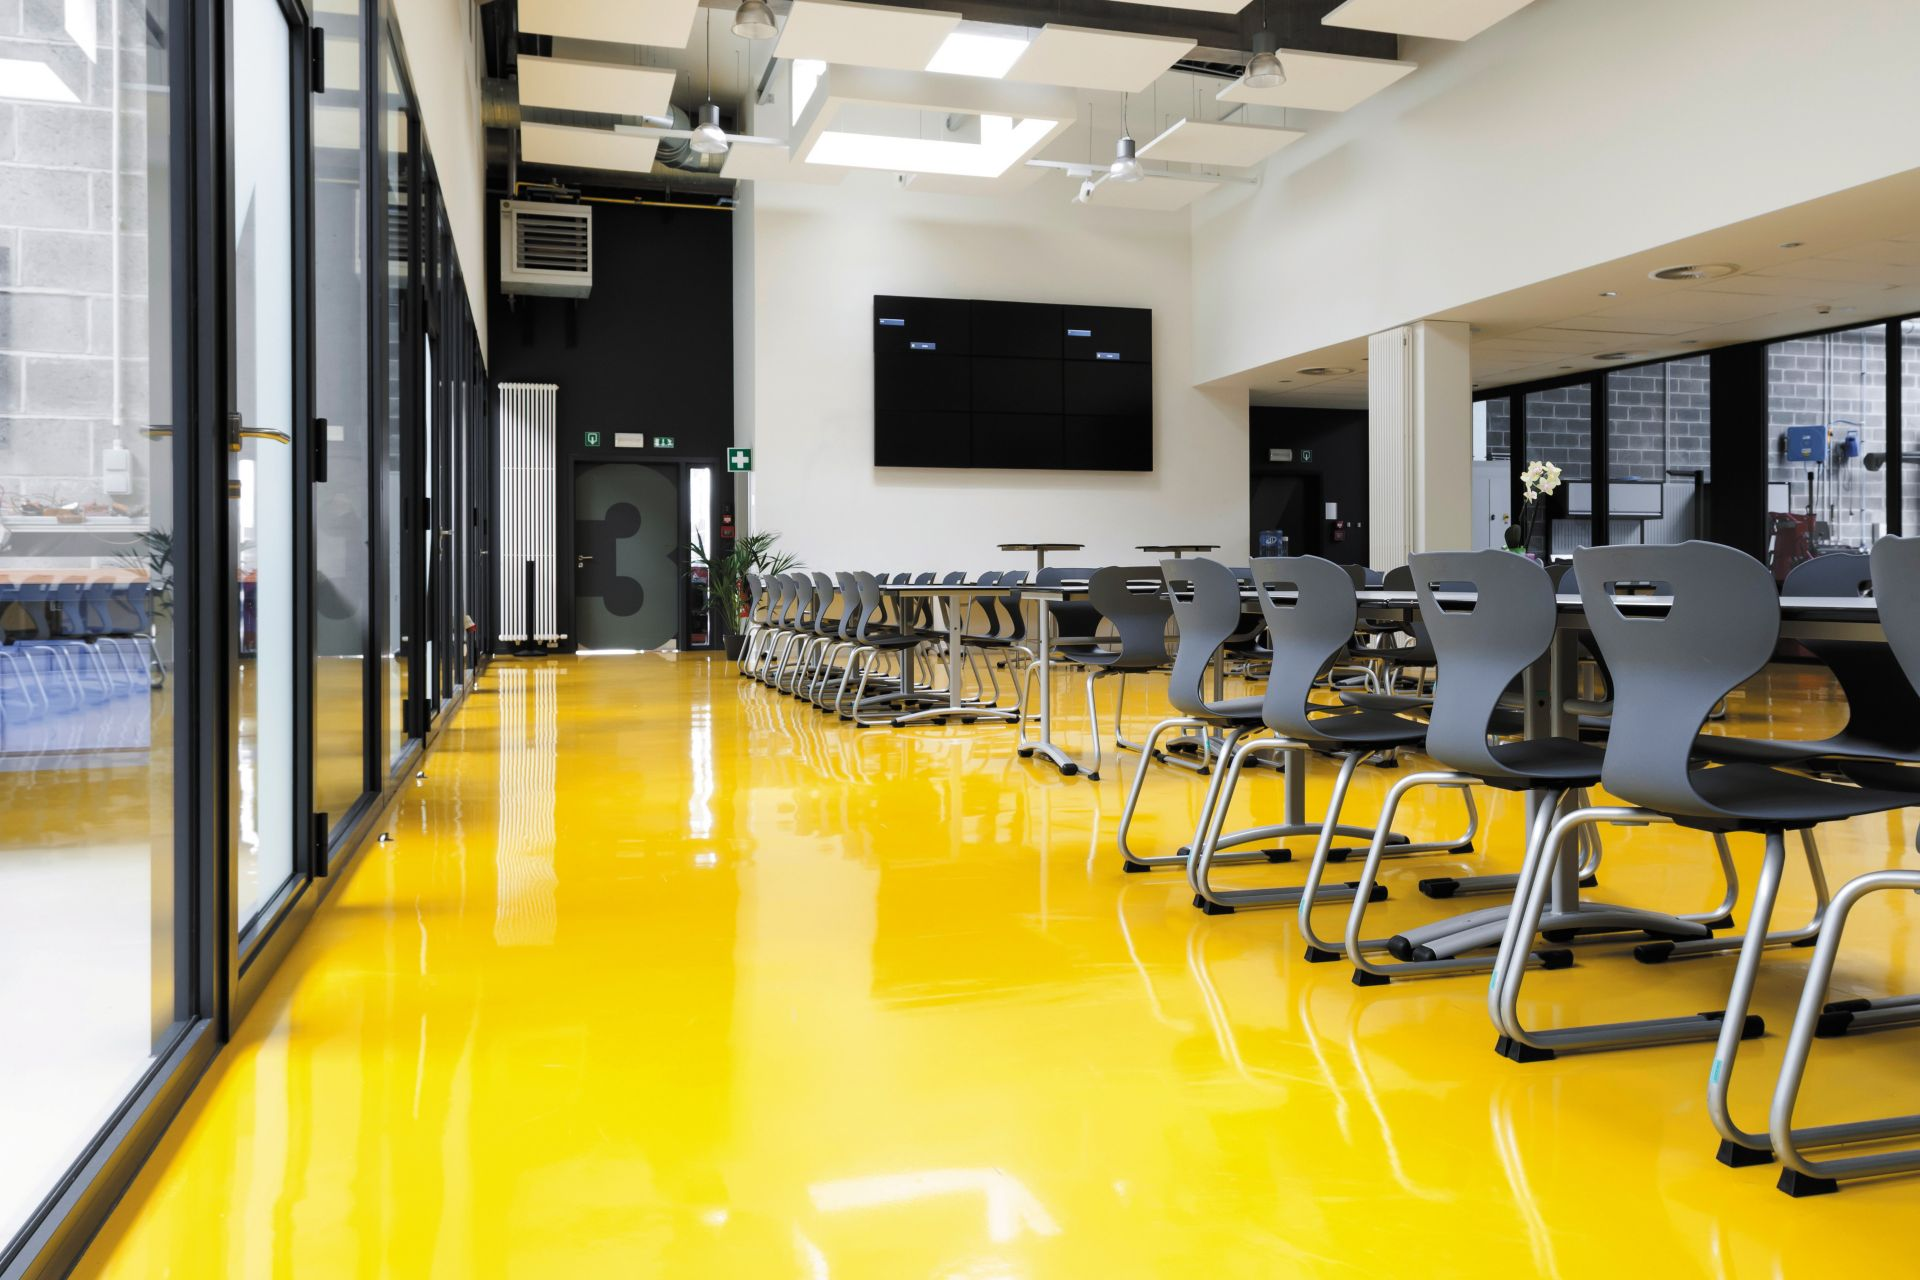 Sika ComfortFloor® yellow floor at school cafeteria